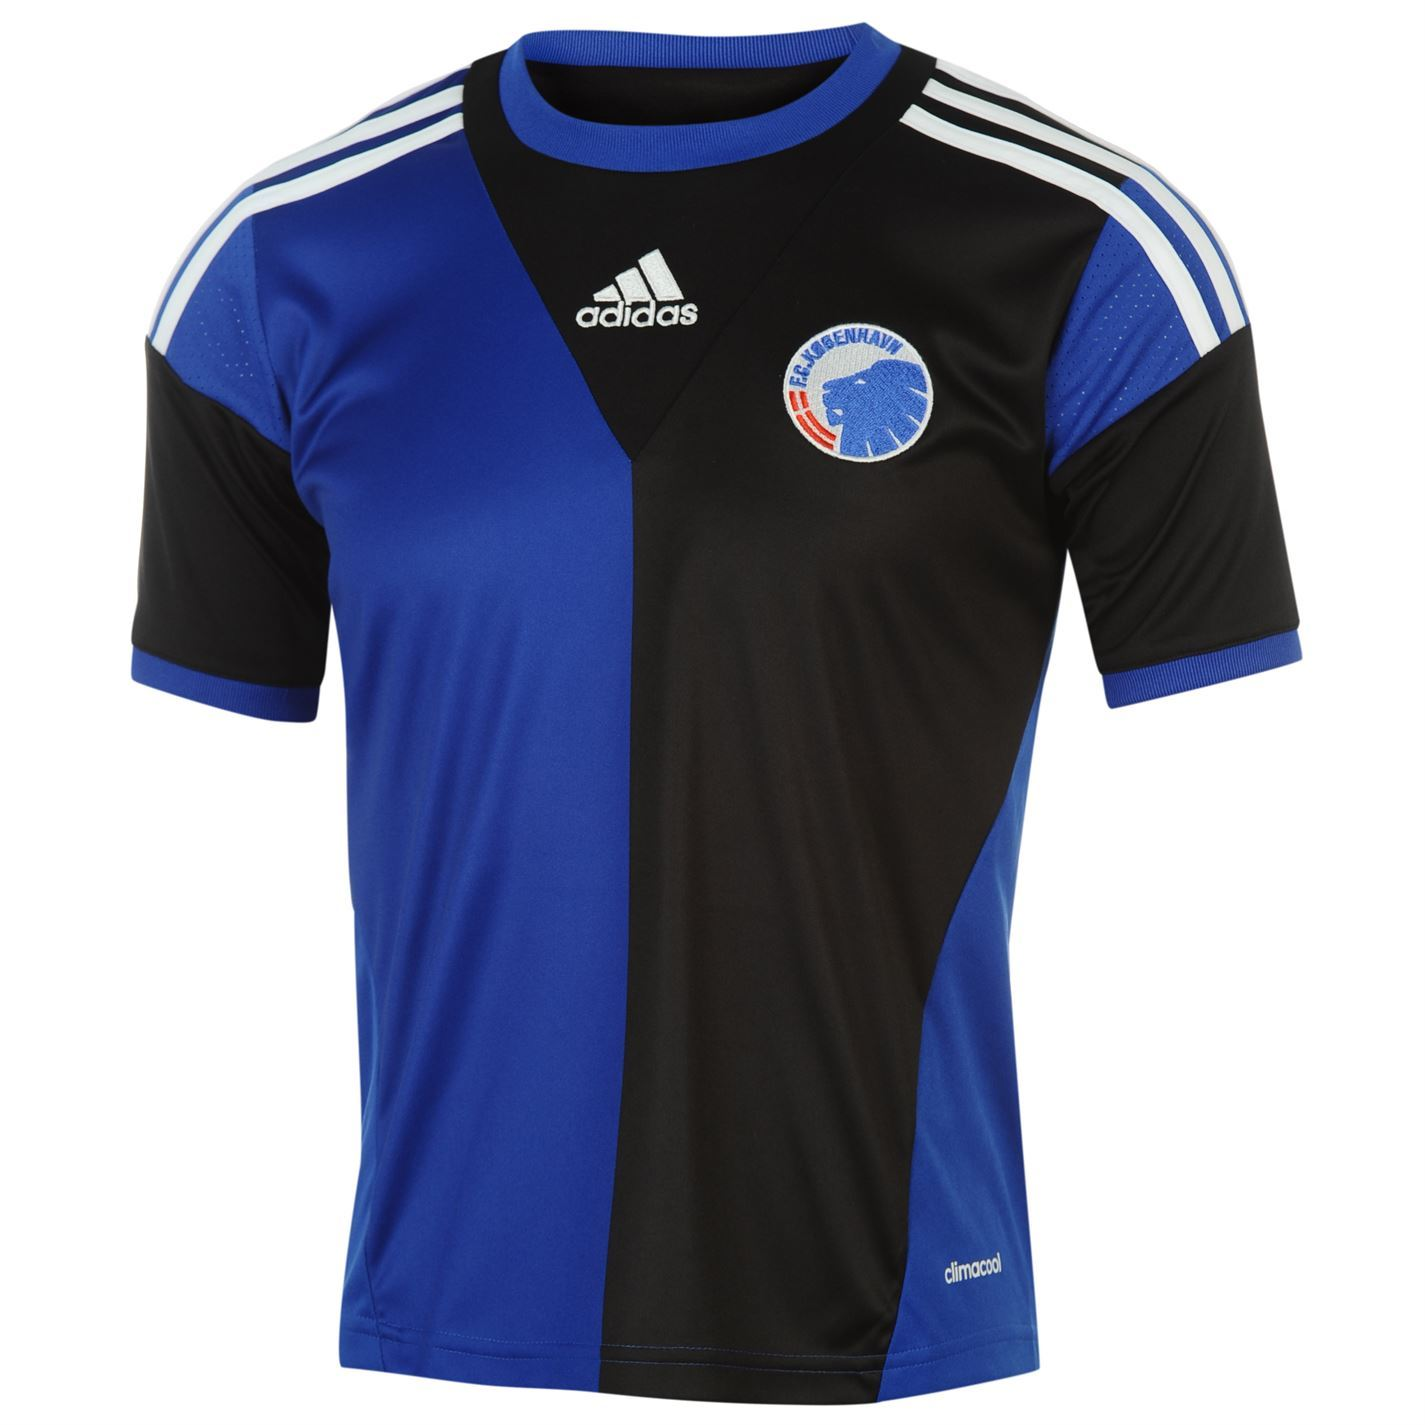 Adidas Copenhagen Away Jersey   Mens Black Blue Shirt Football